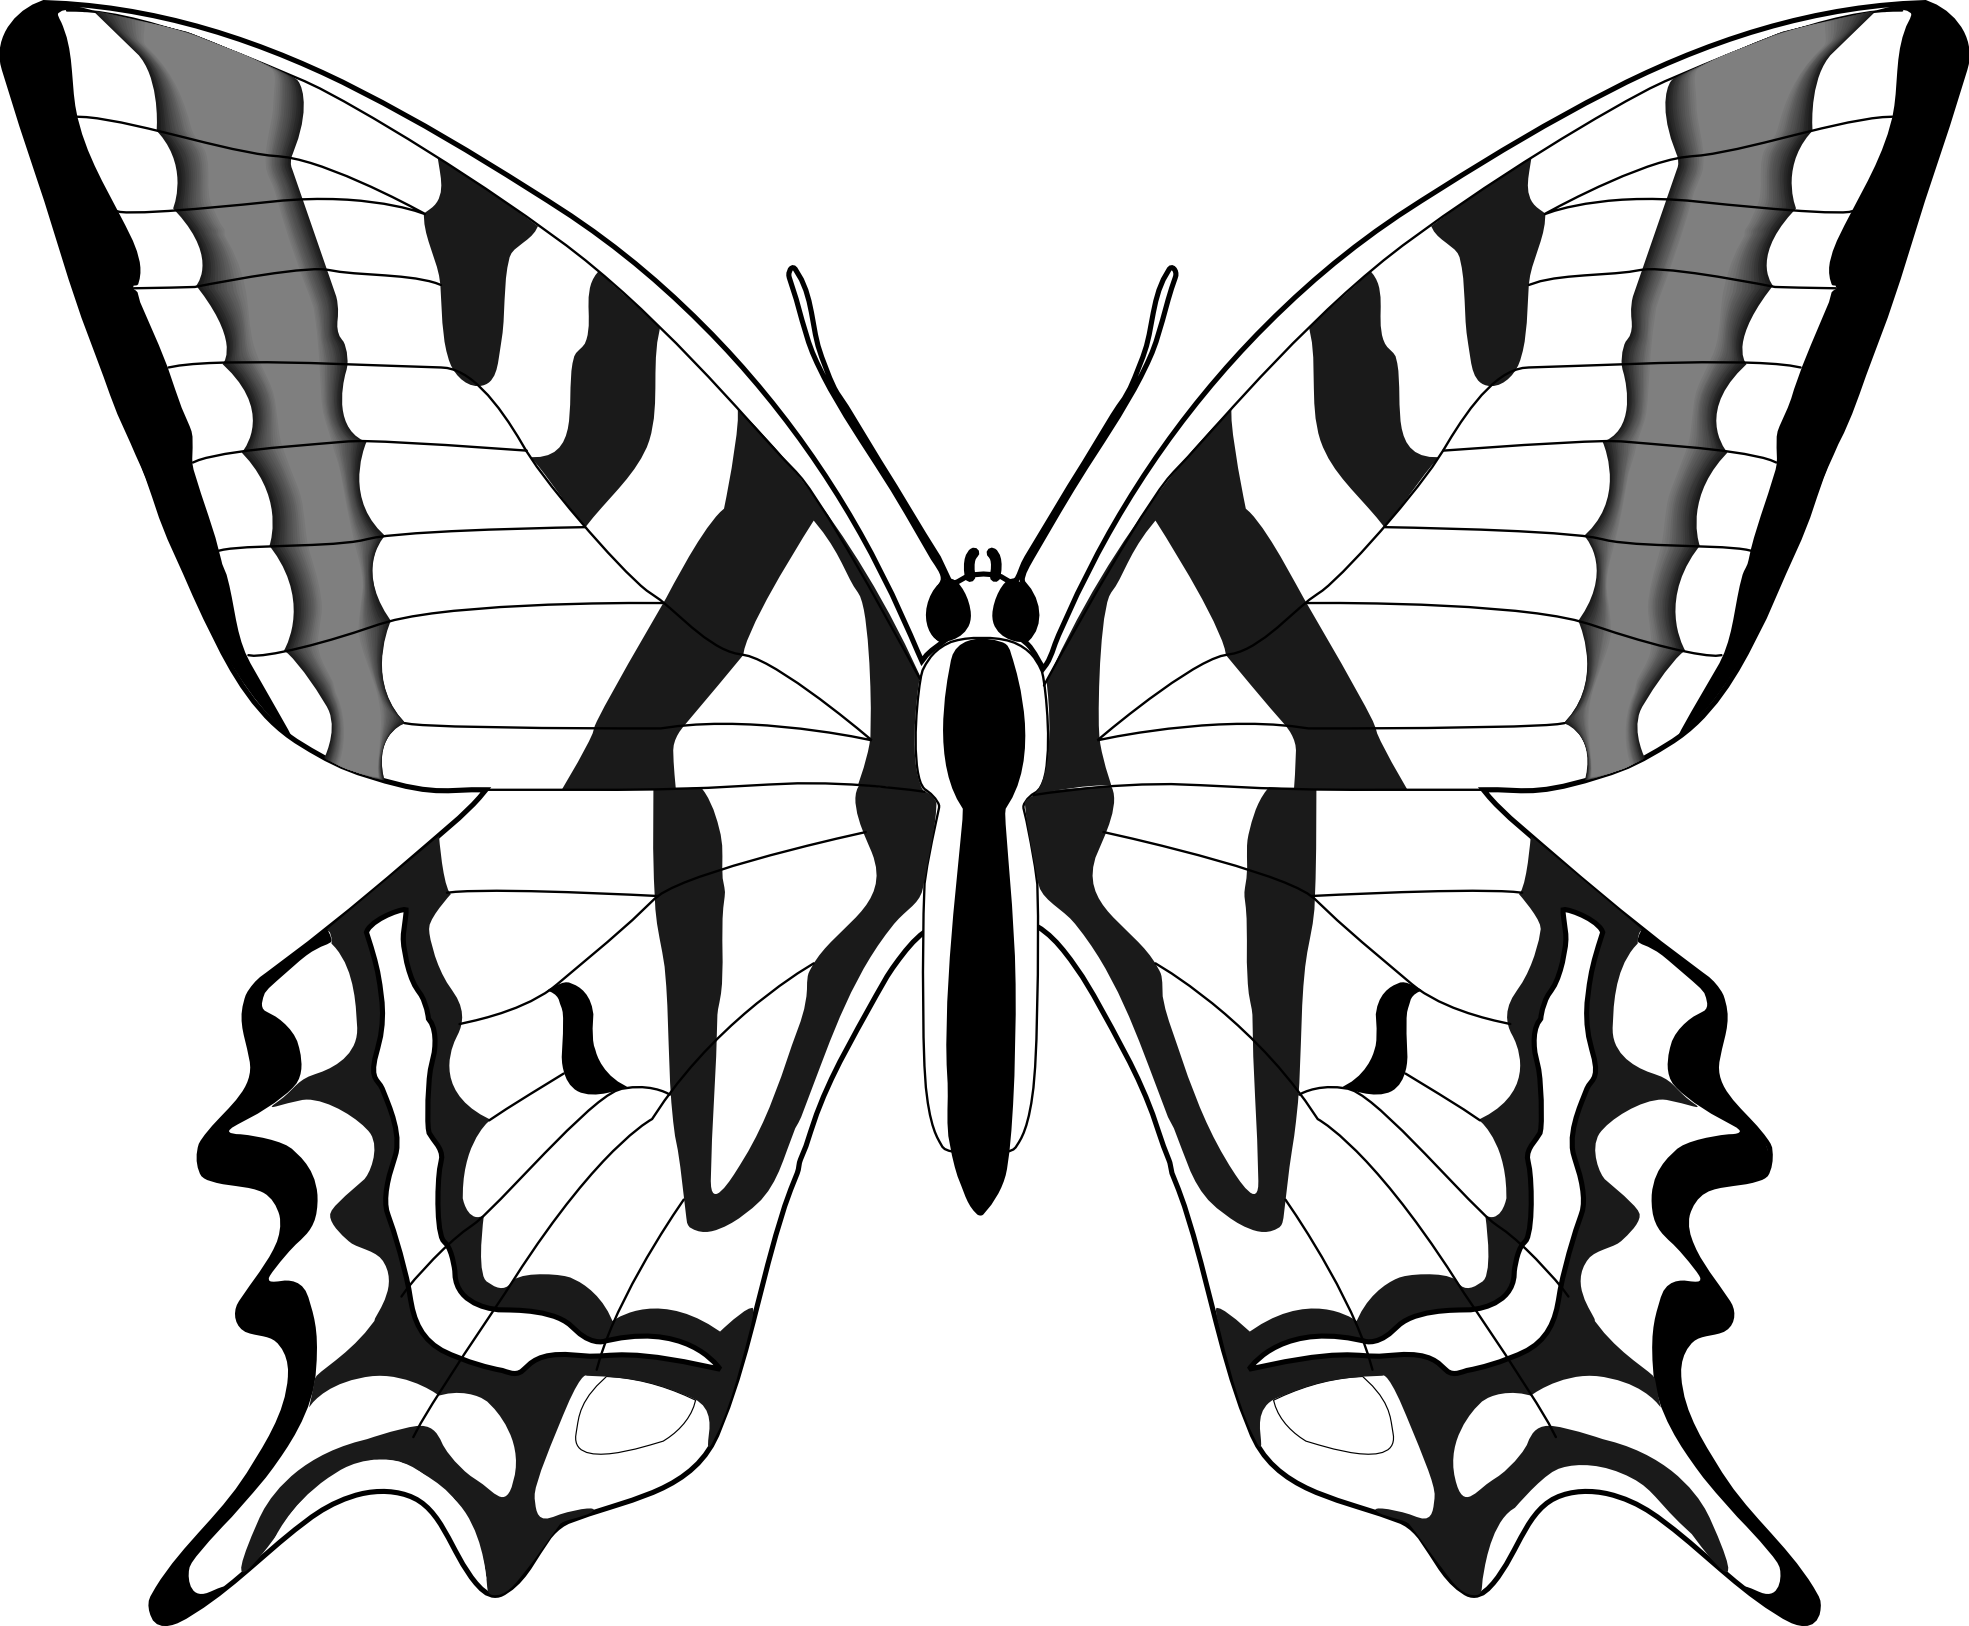 Butterfly on flower clipart black and white vector royalty free download Butterfly Black And White Drawing at GetDrawings.com | Free for ... vector royalty free download